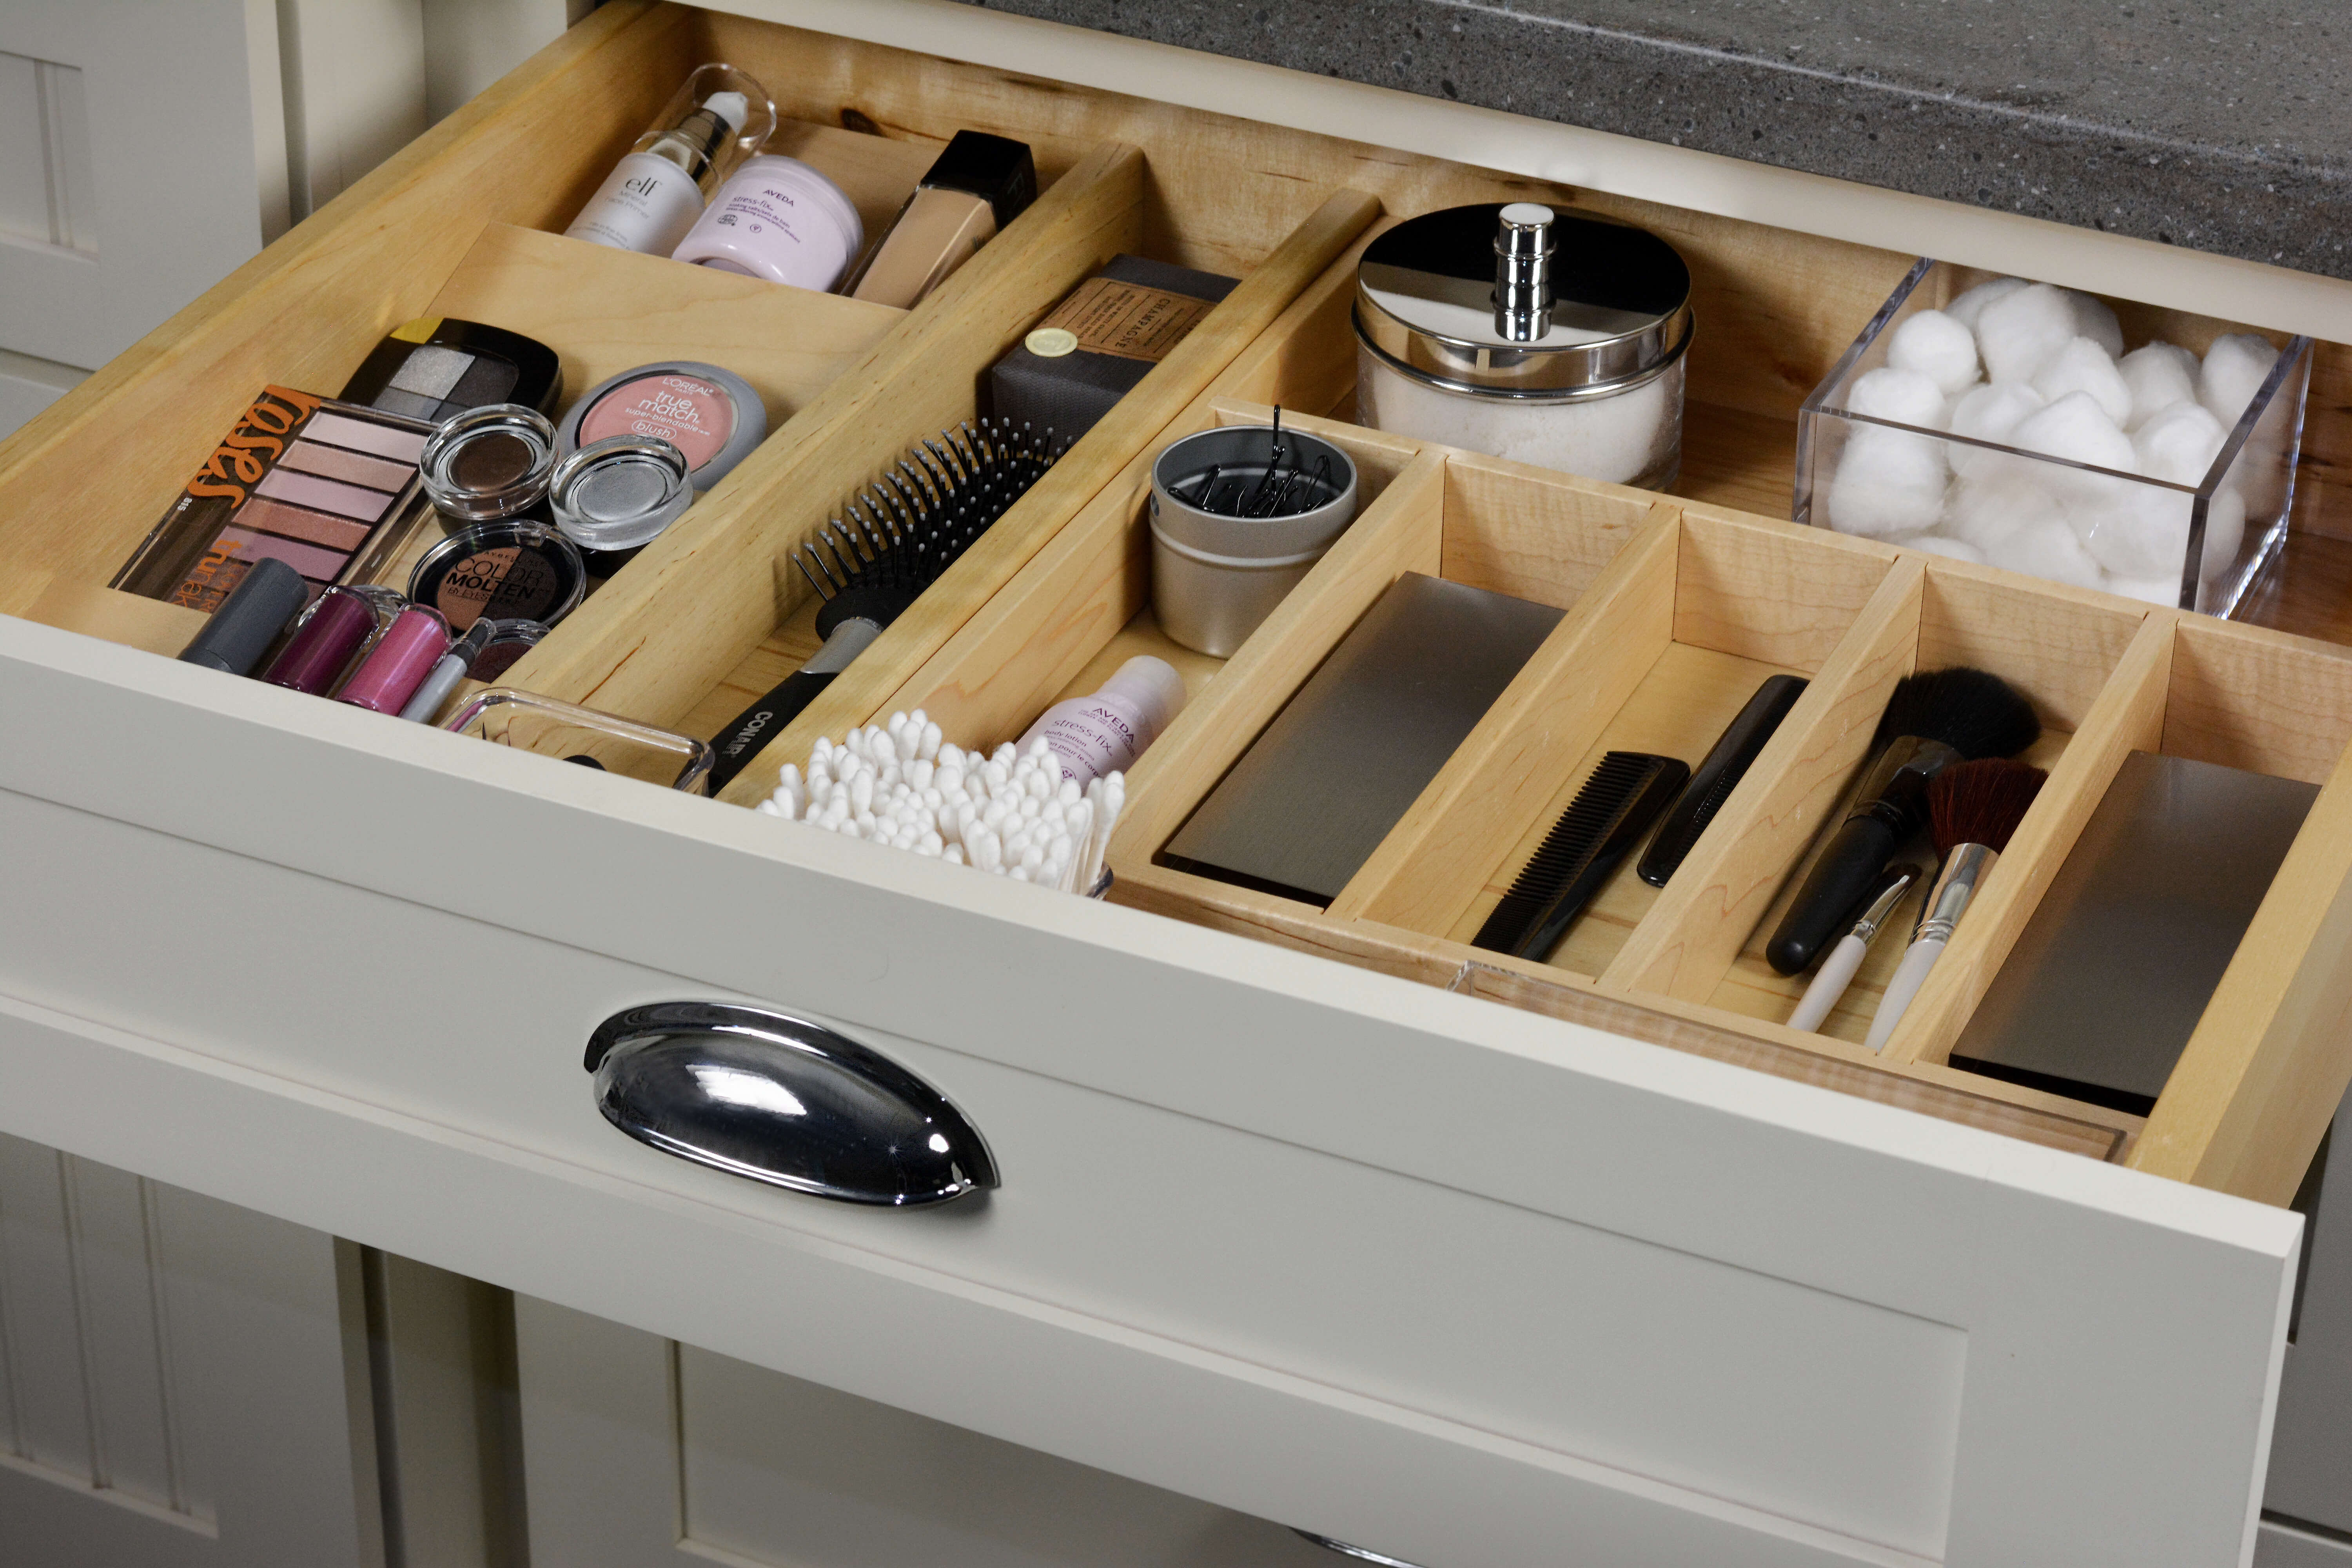 Cutlery Divider Tray, Spice Rack, and Partitions (For Other Rooms)